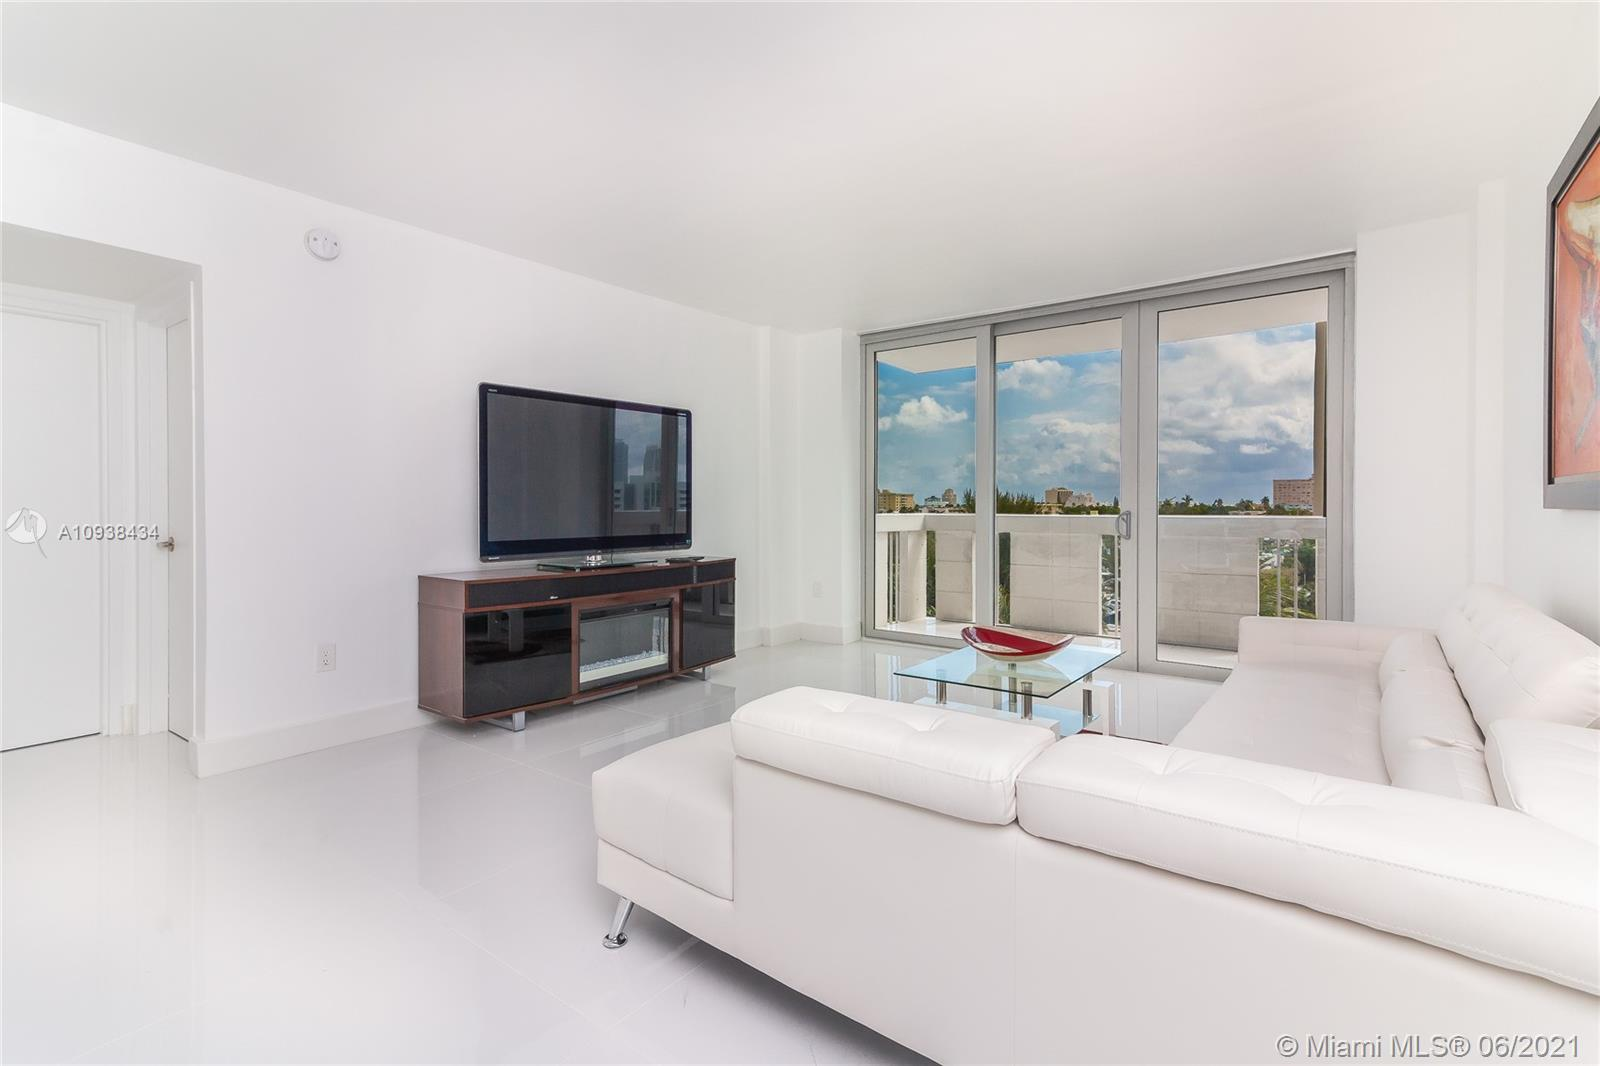 South Bay Club #622 - 800 West Ave #622, Miami Beach, FL 33139